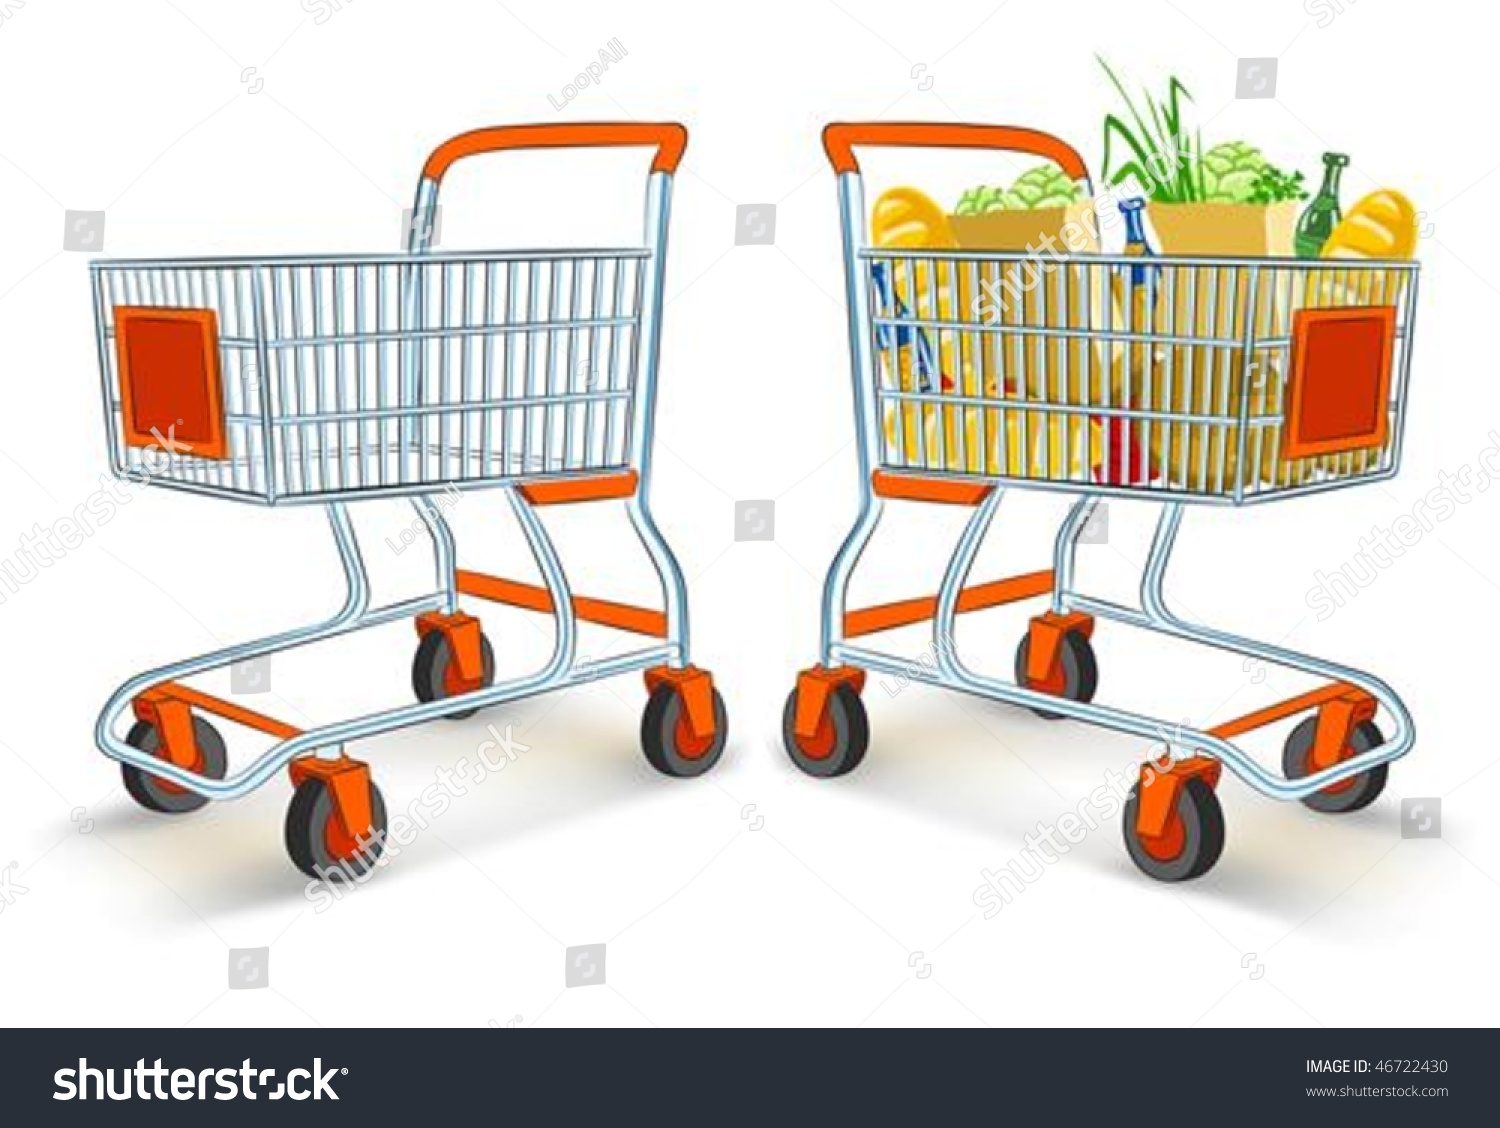 Worksheet Full And Empty full empty shopping carts supermarket store stock vector 46722430 and from illustration isolated on white background